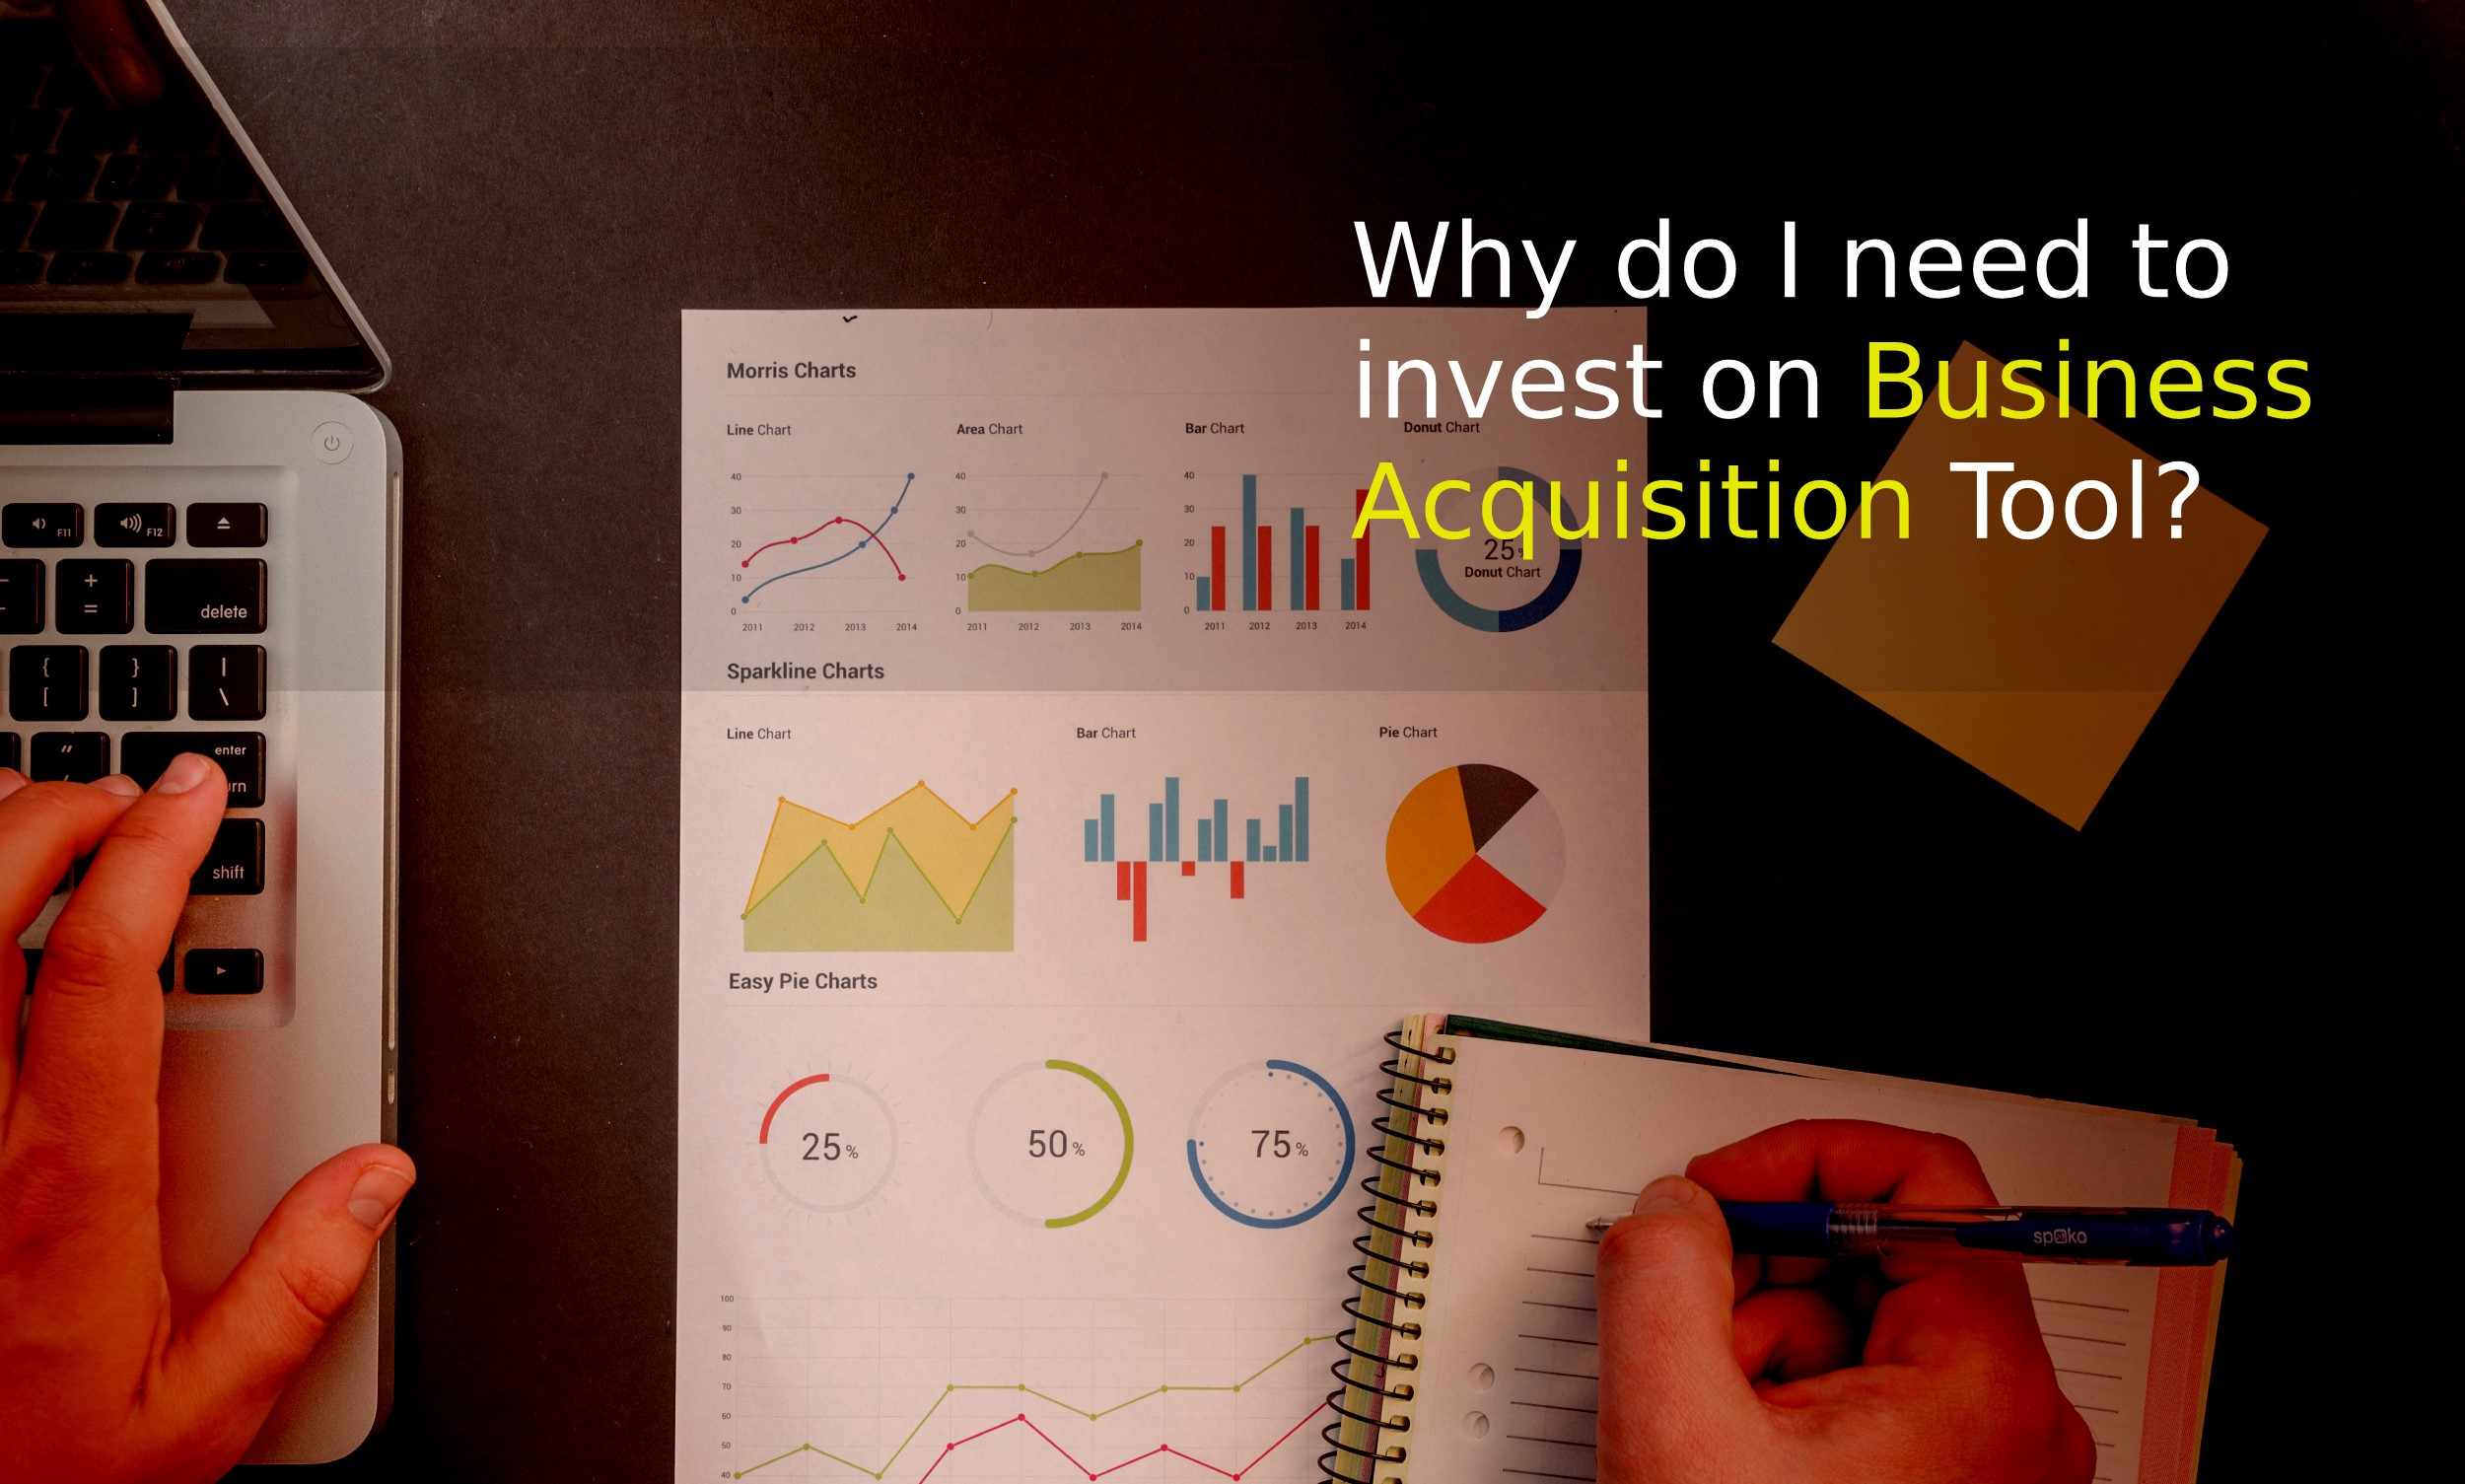 Why do I need to invest on Business Acquisition Tool?